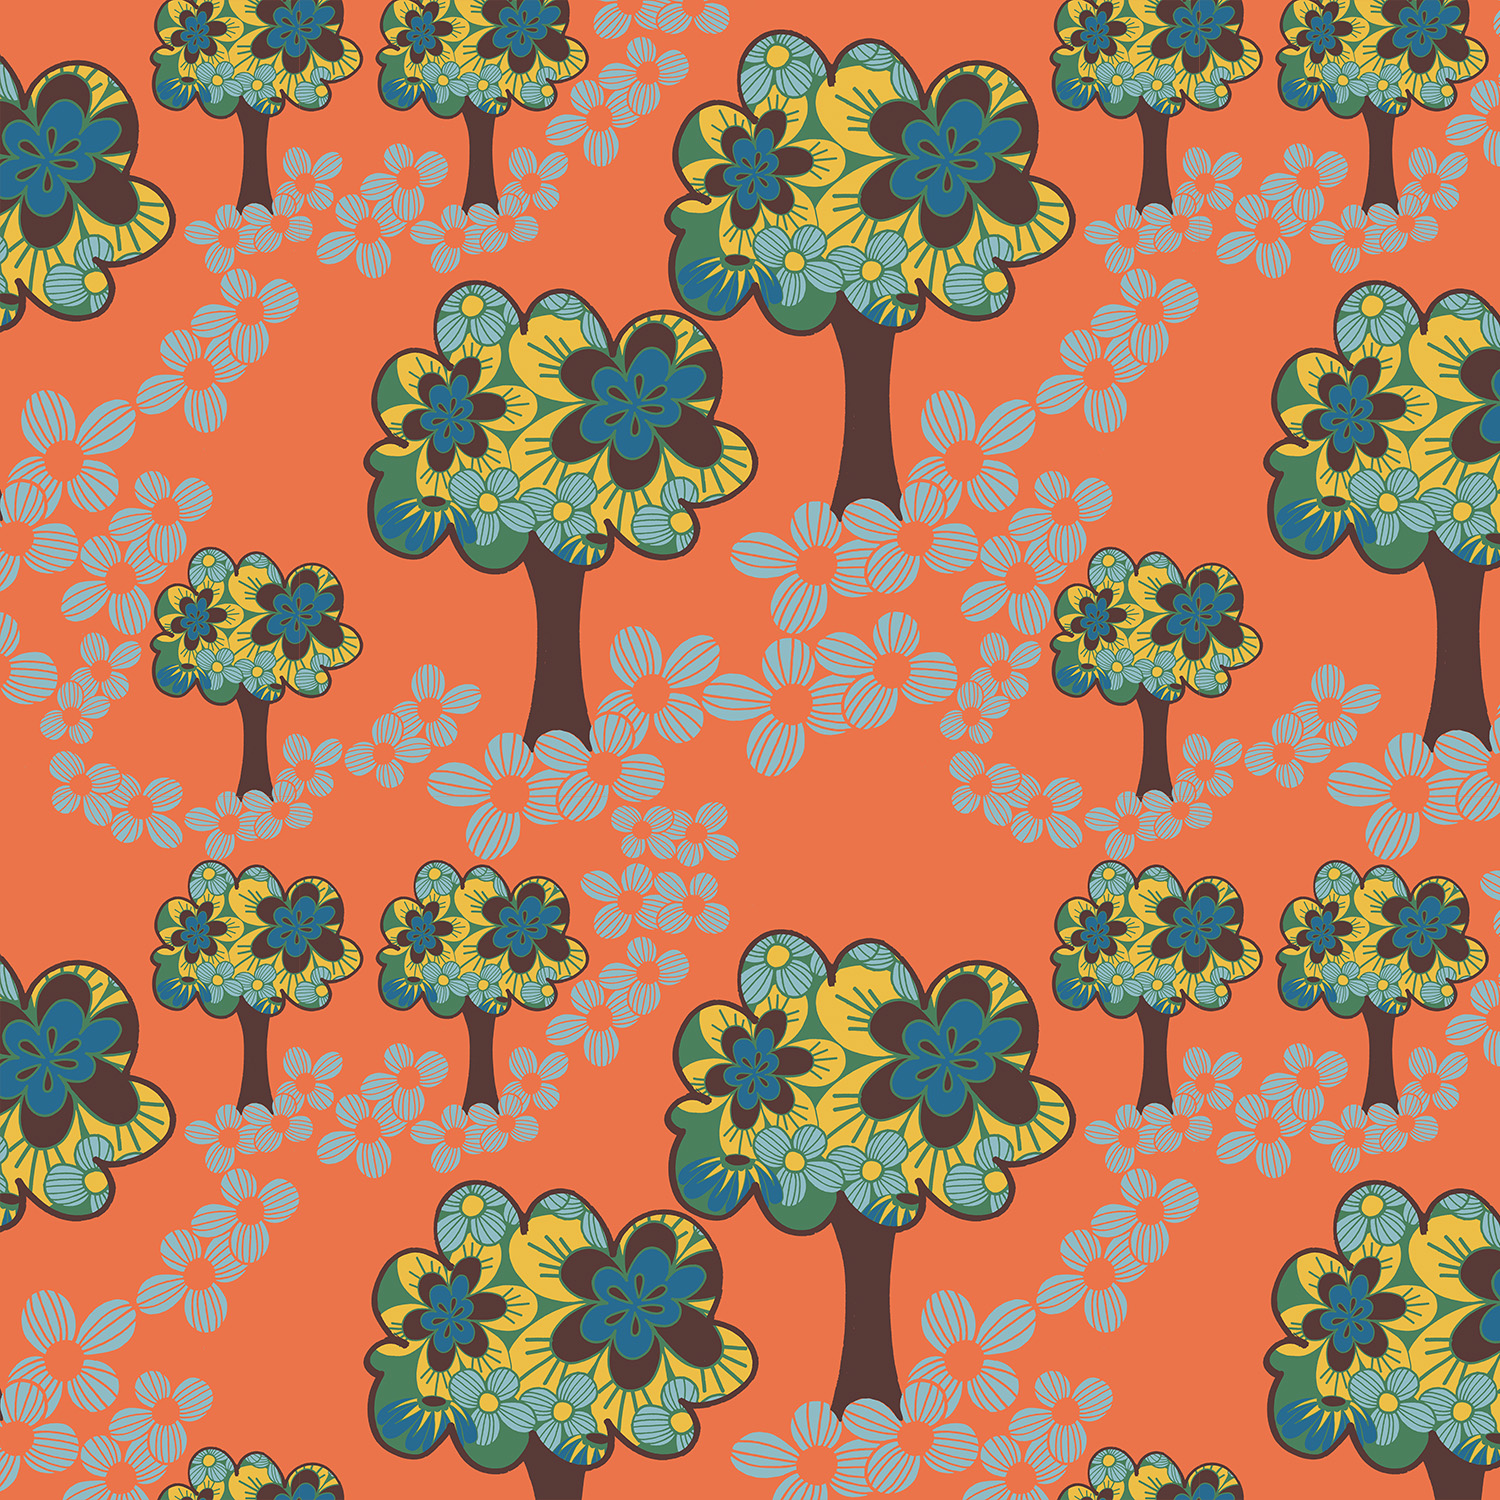 Colourful design of trees